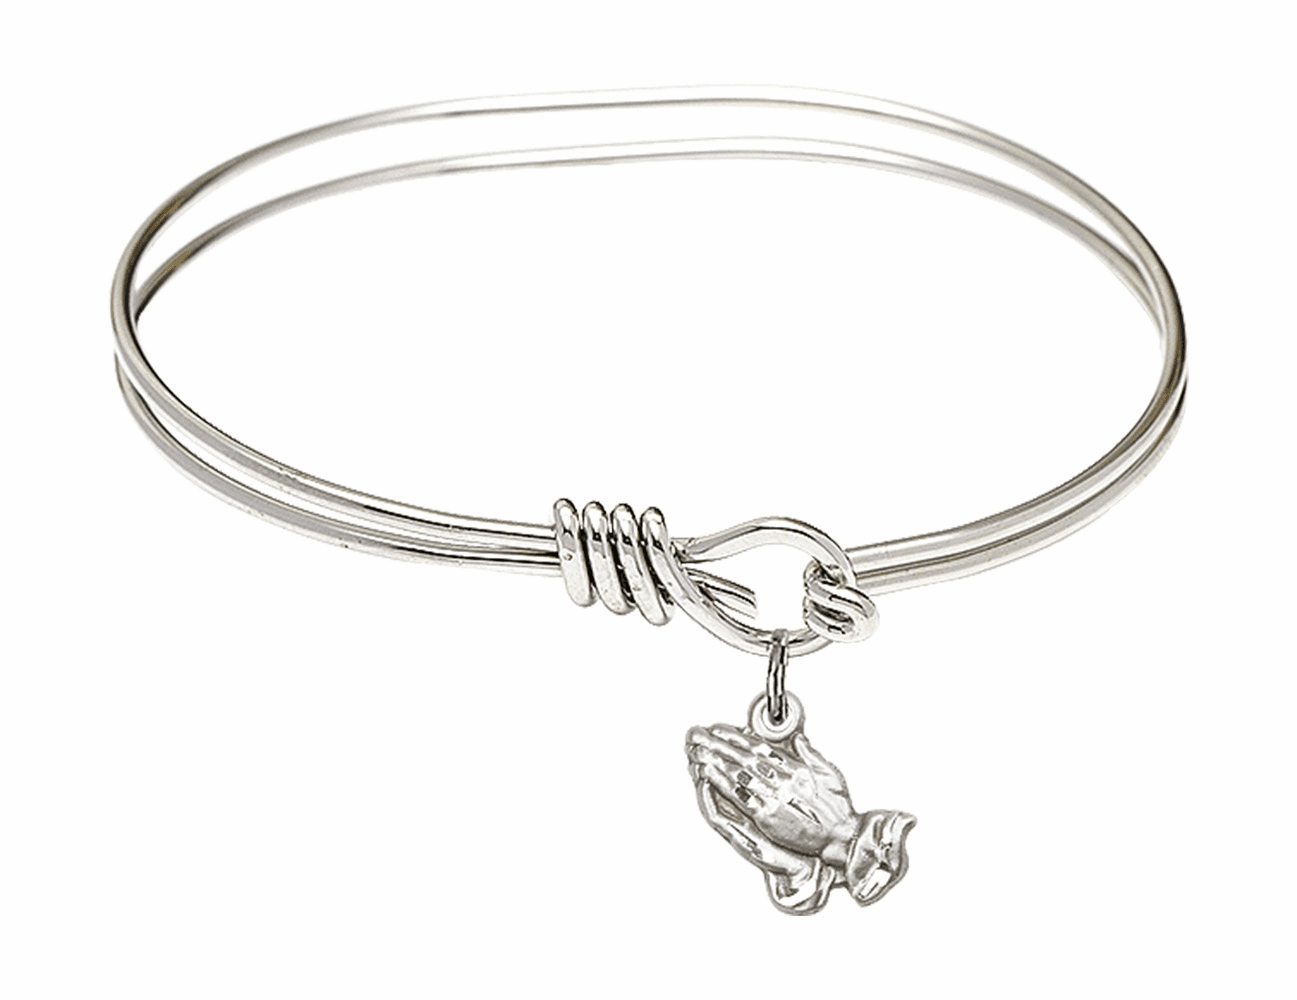 Round Eye Hook Bangle Bracelet with a Praying Hands Charm by Bliss Mfg